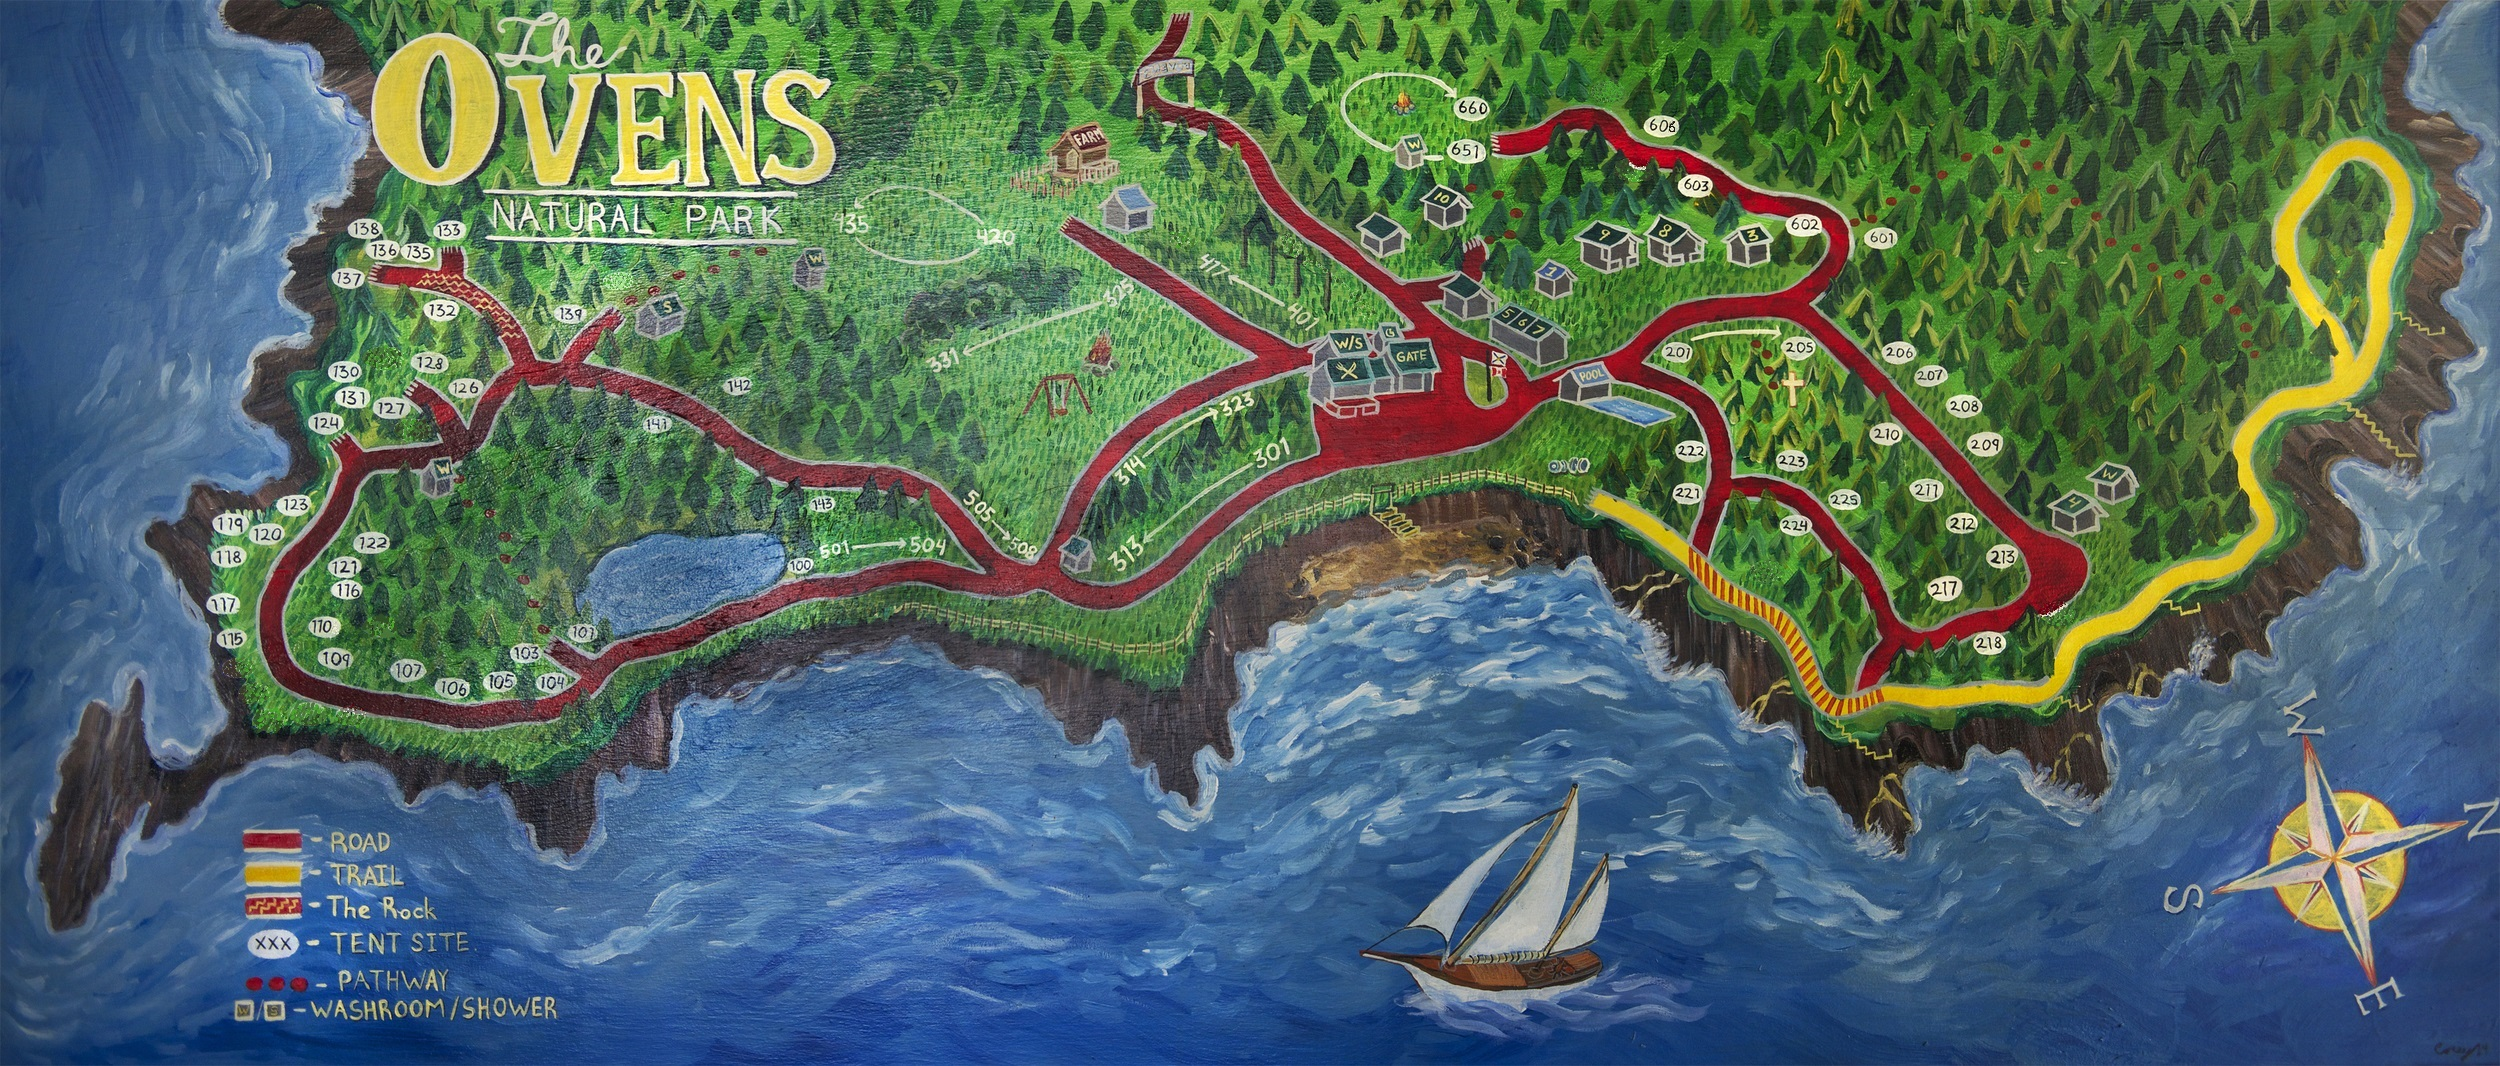 Ovens Park Map by Corey J. Isenor.